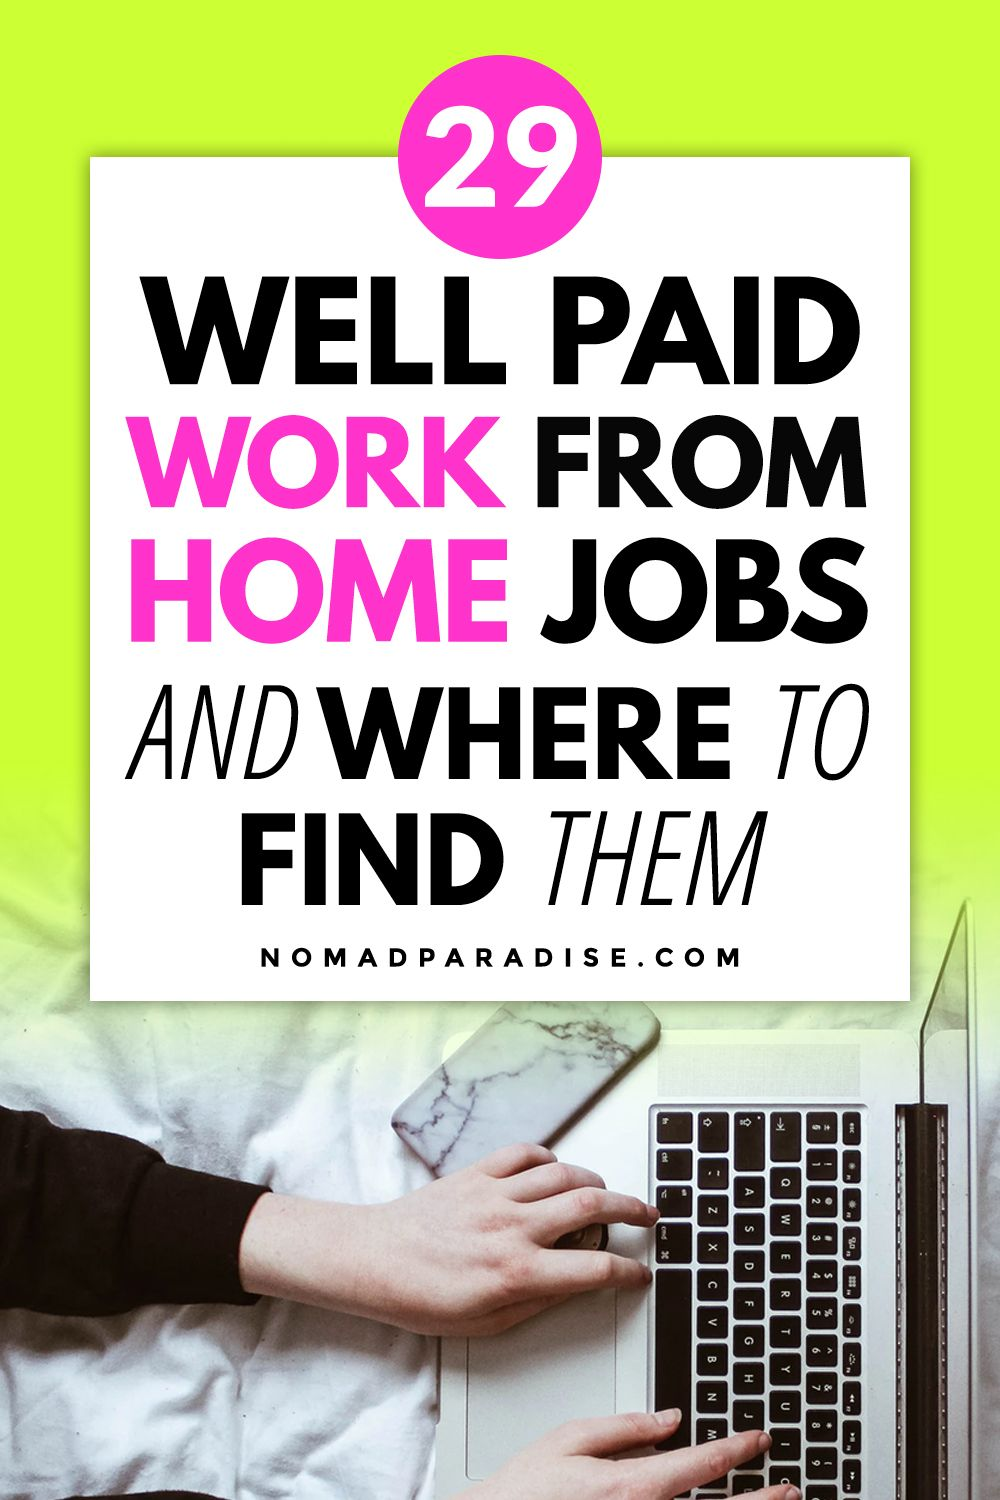 Best Remote Work From Home Jobs In 2020 Work From Home Jobs Online Jobs From Home Legit Work From Home